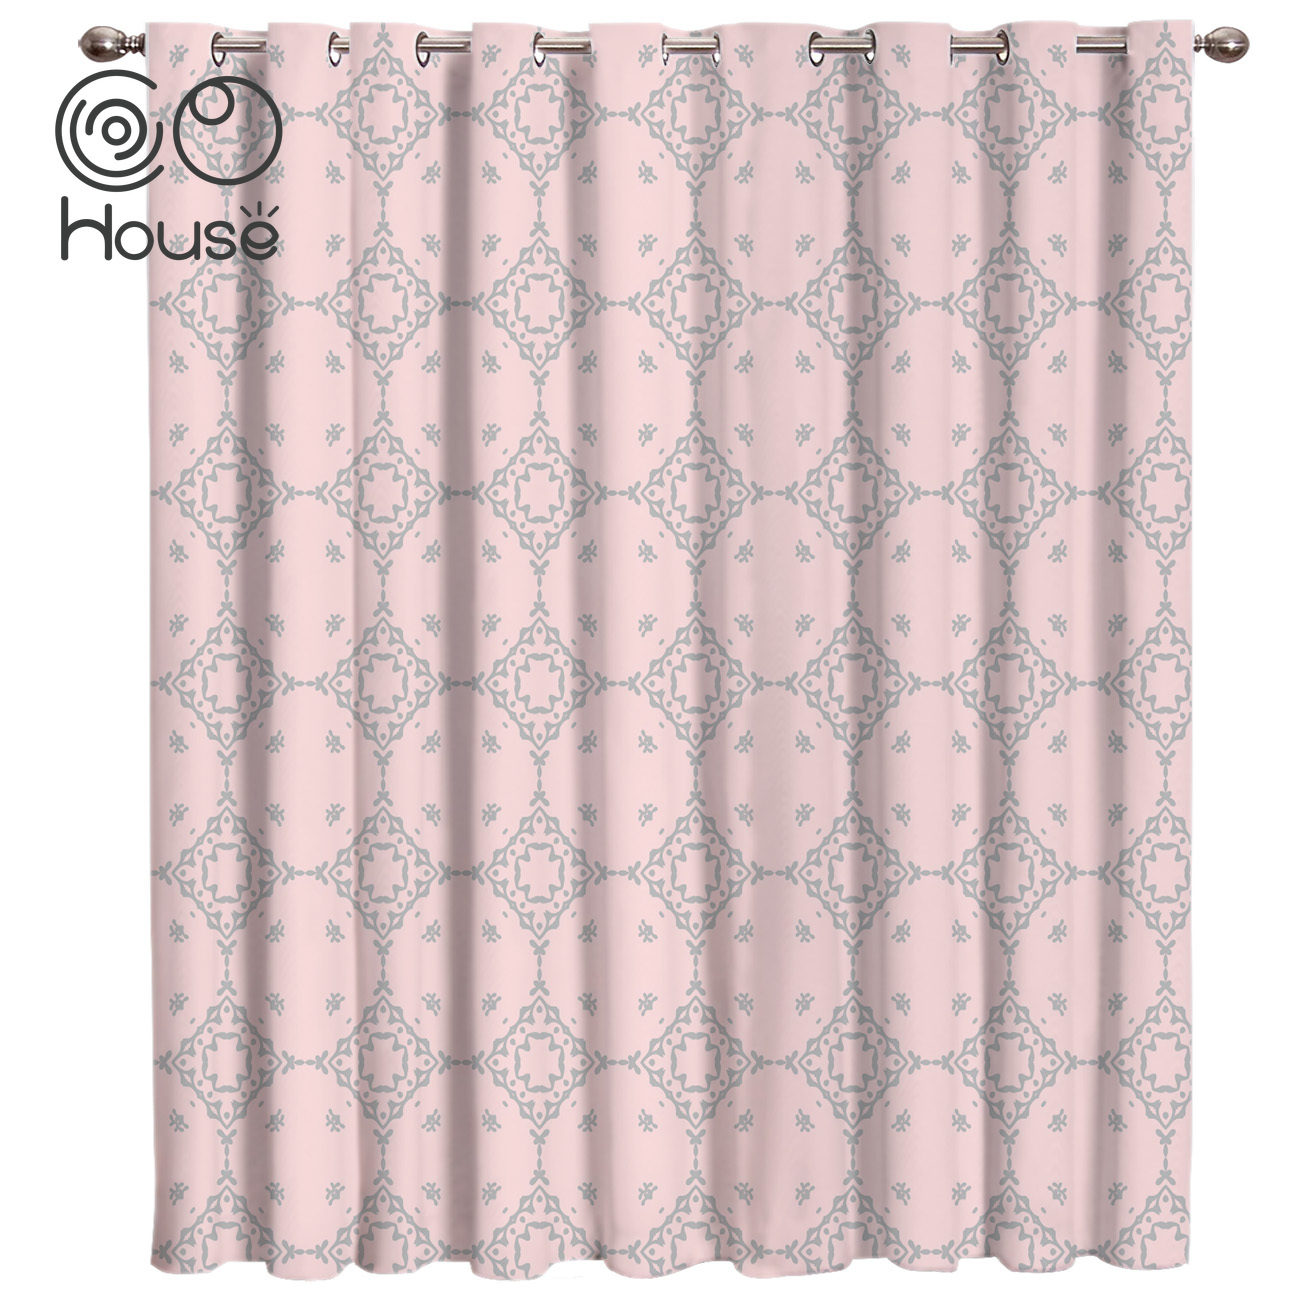 COCOHouse Bohemia Retro Ethnic Room Curtains Large Window Curtain Rod Bathroom Fabric Decor Curtain Panels With Grommets Window